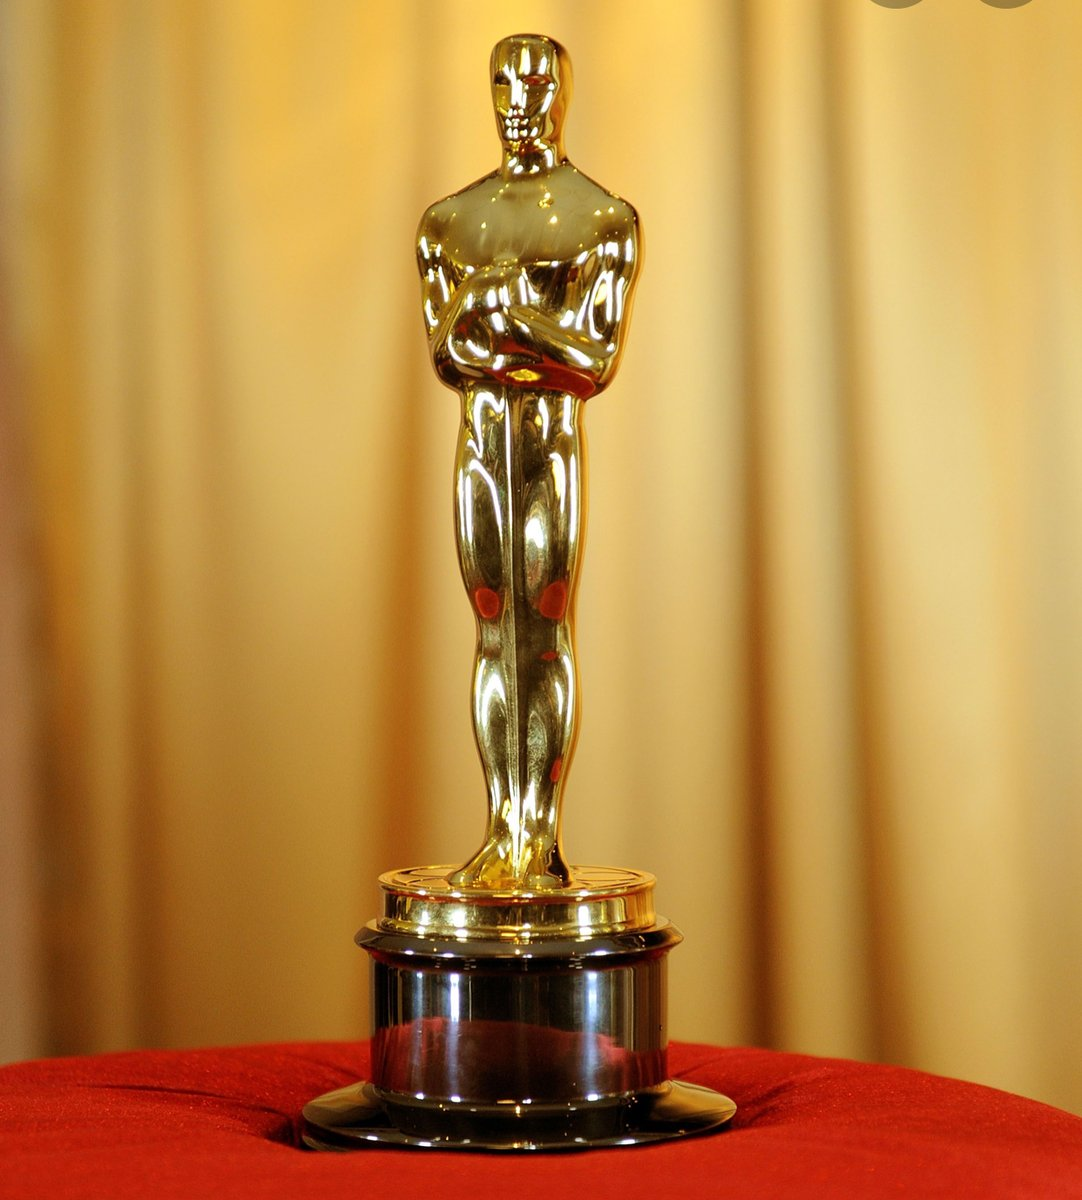 The Oscars have to be the most prestigious award in the world of show business. But did you know; the biggest winner of all time is Walt Disney with 22 wins from 59 nominations. #visitlondonvirtually #zoomtoursoflondon #disney https://t.co/Ab0KUeQSx9